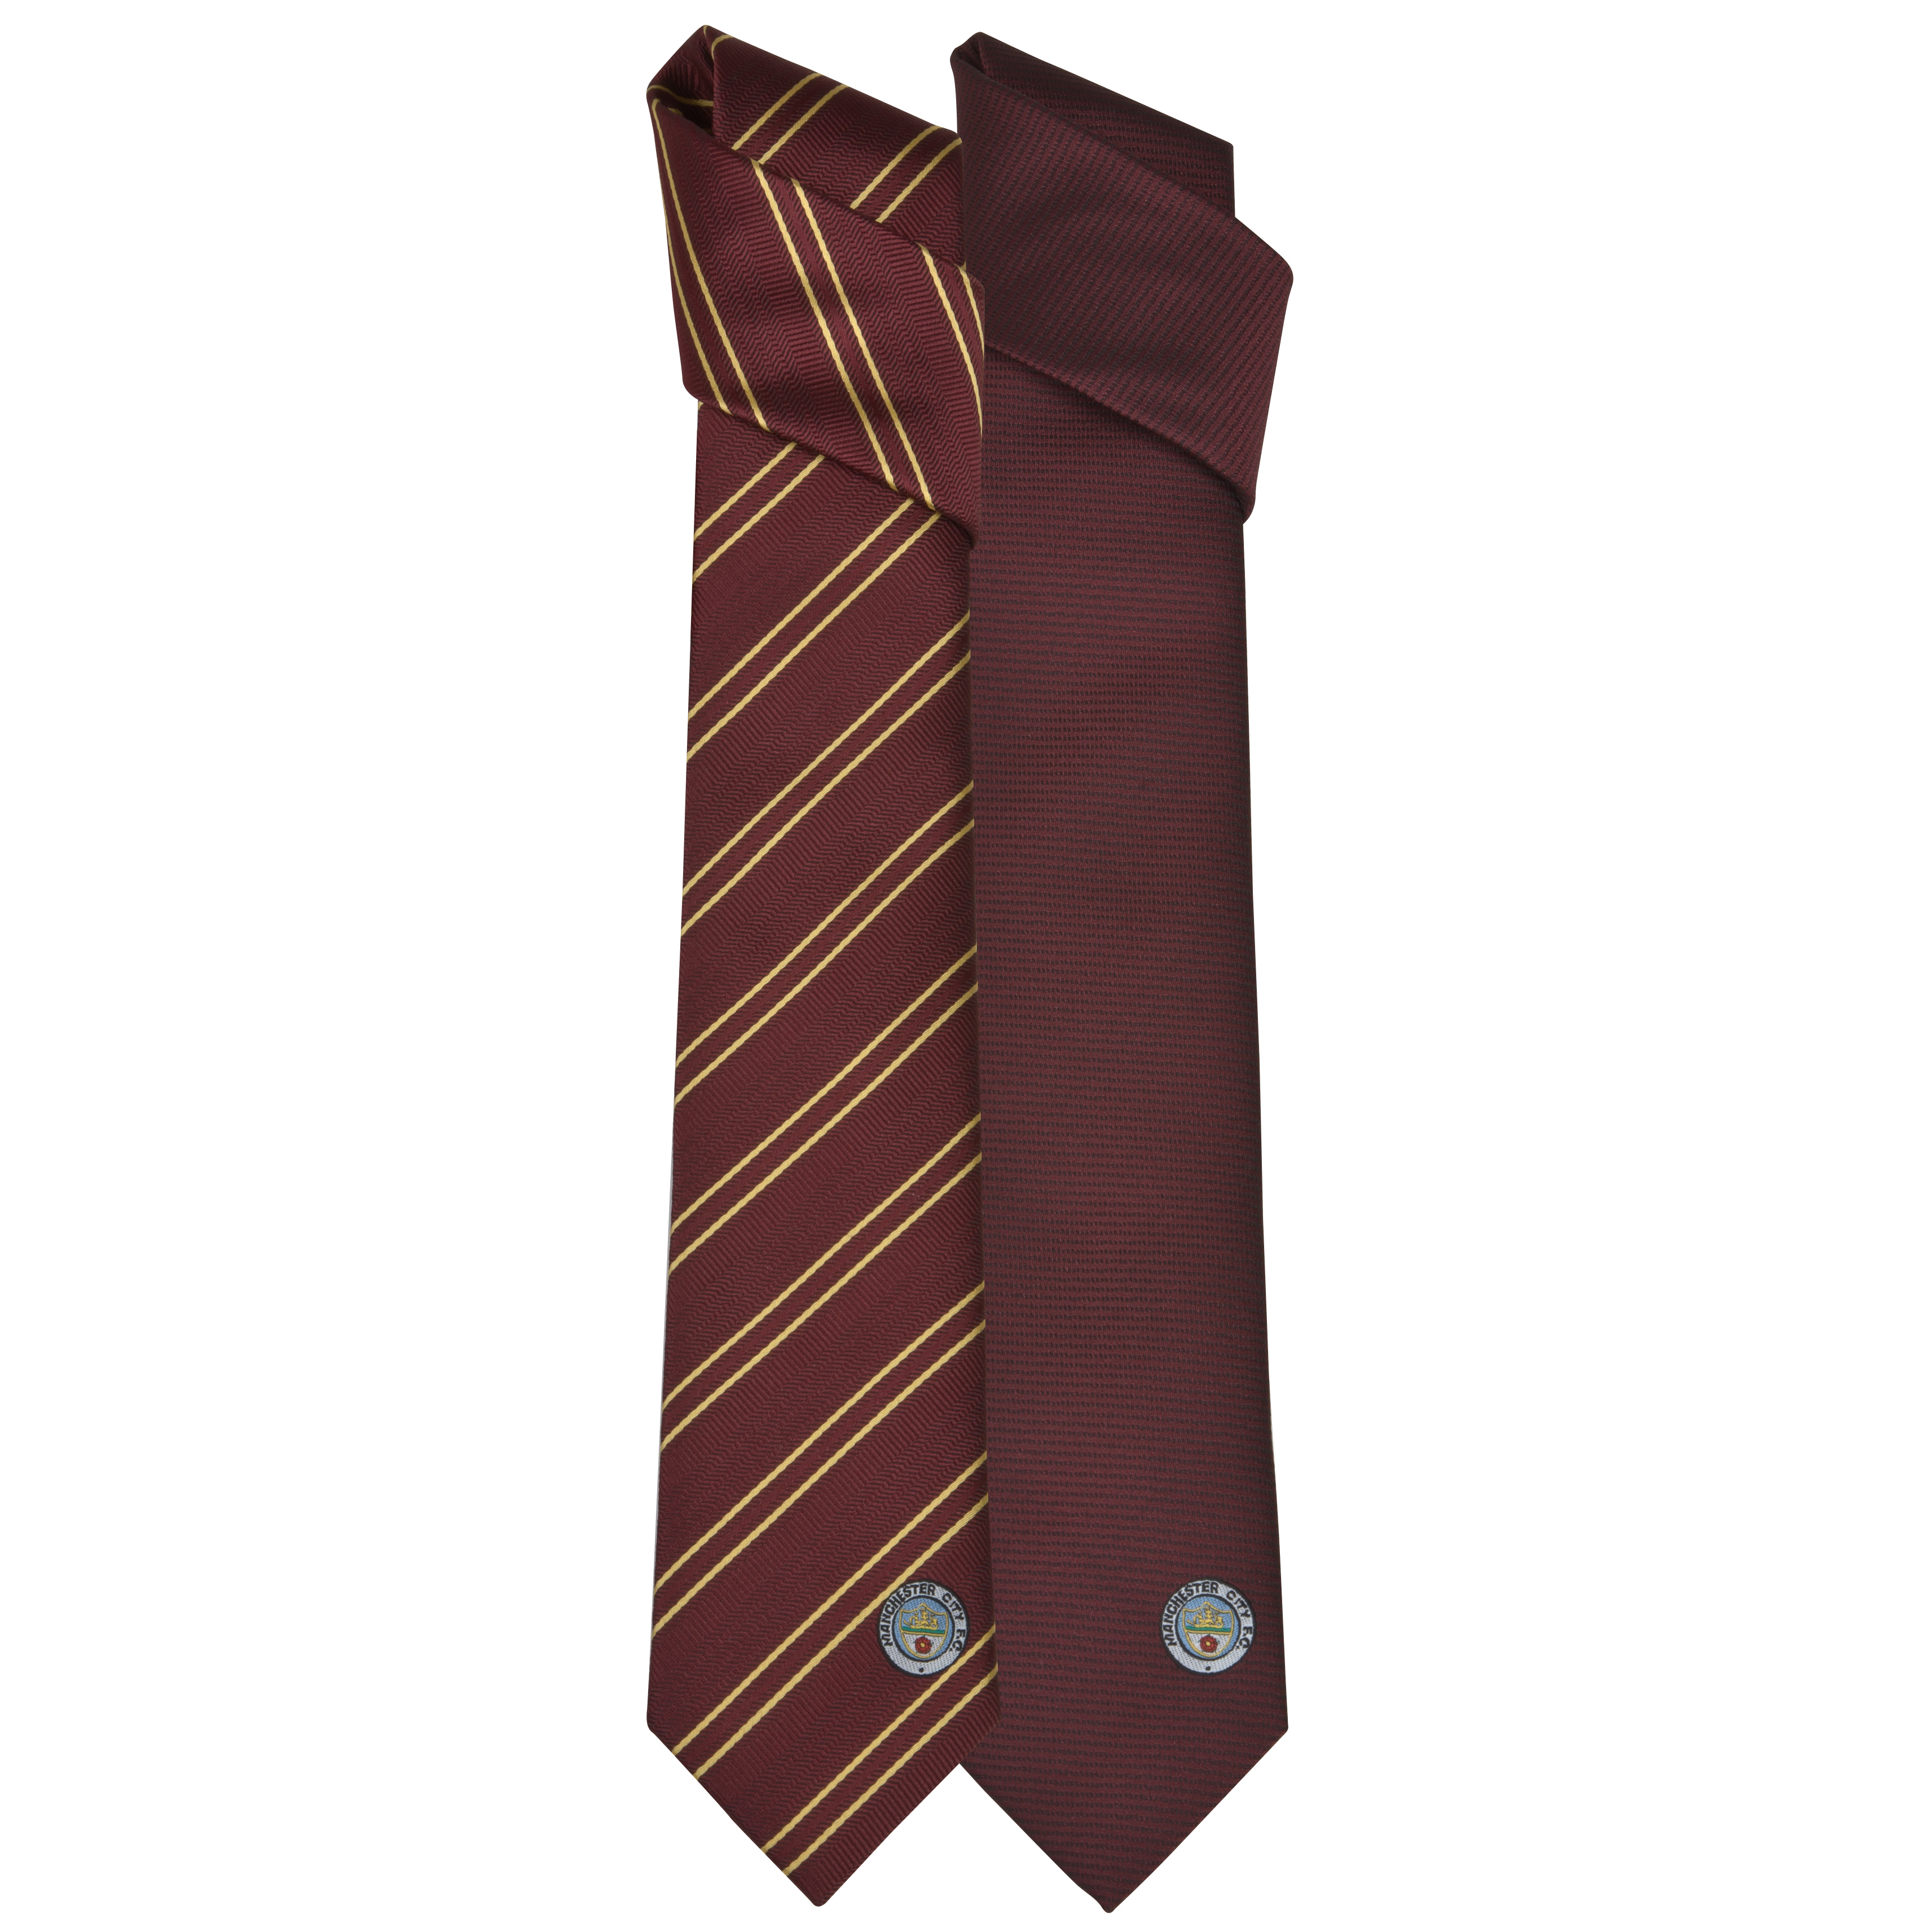 Manchester City 2 Pack of Retro Polyester Ties